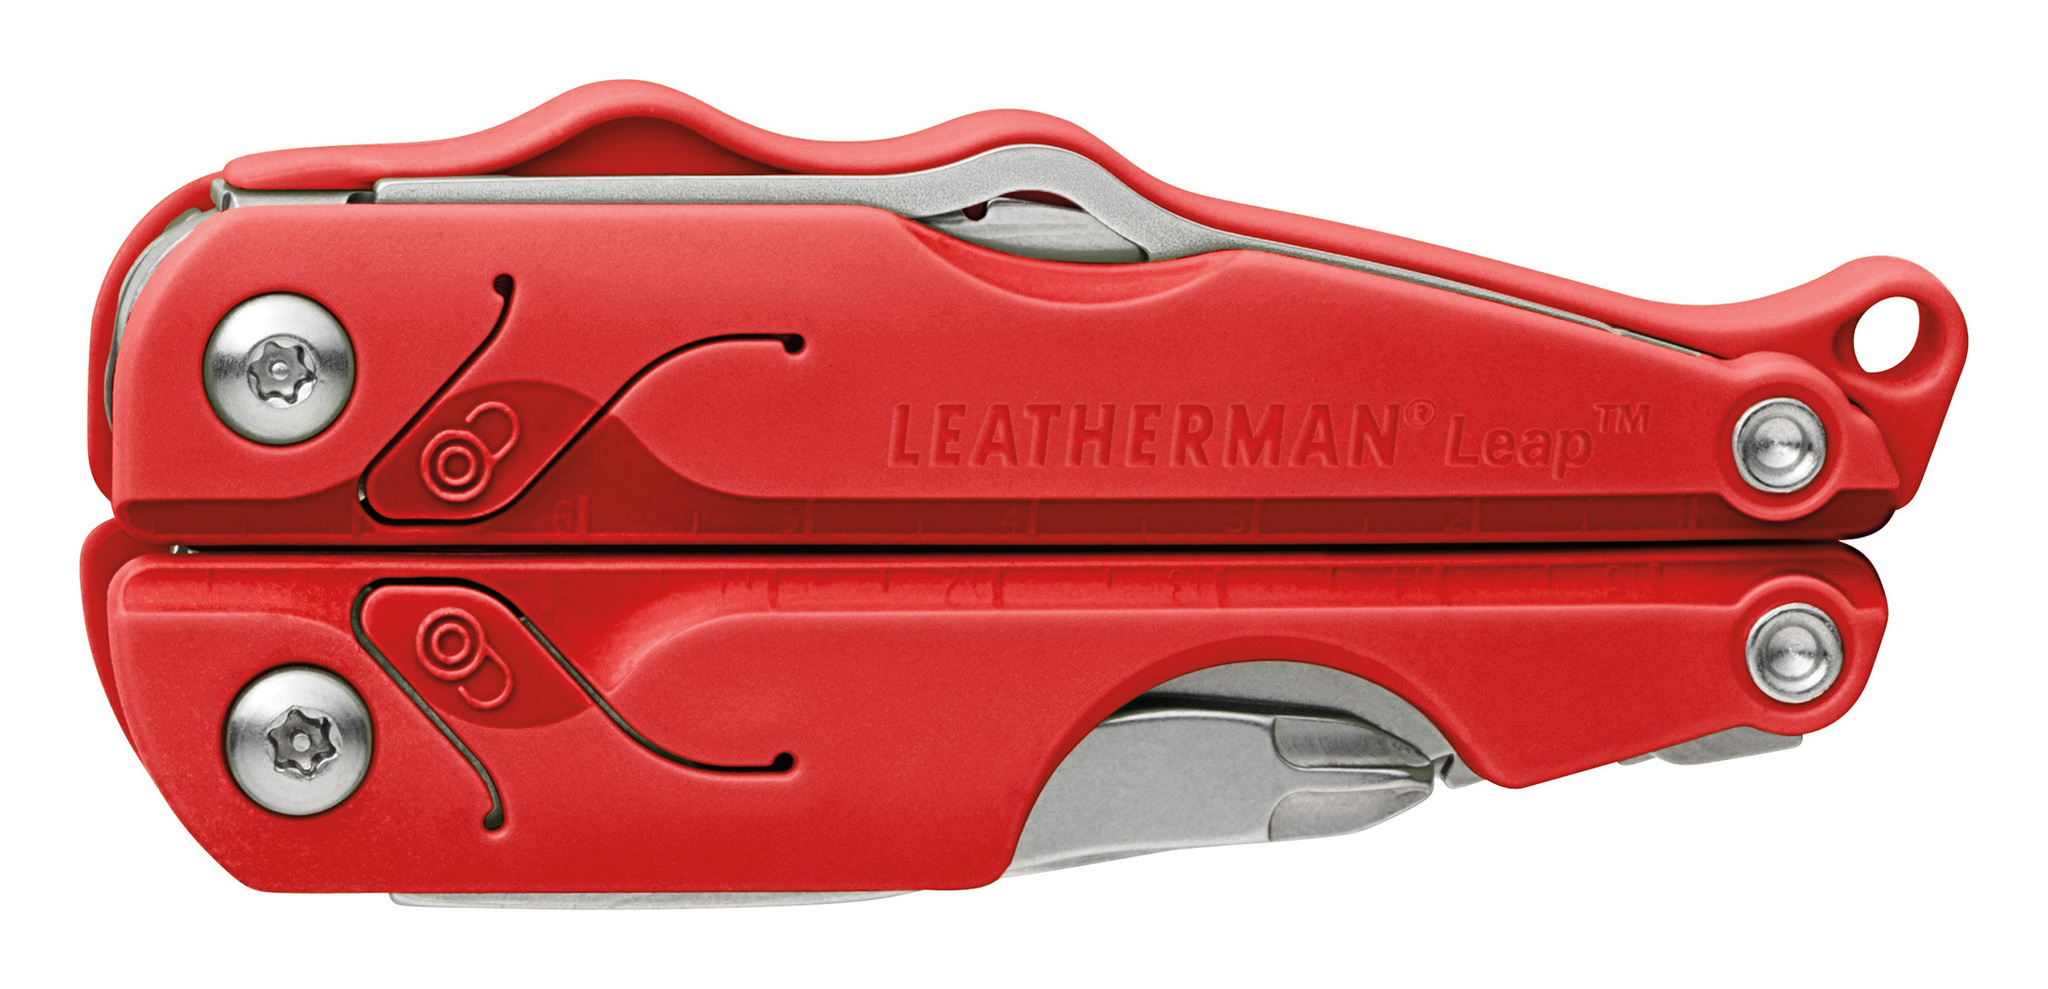 Мультитул Leatherman Leap, 12 функций, красный